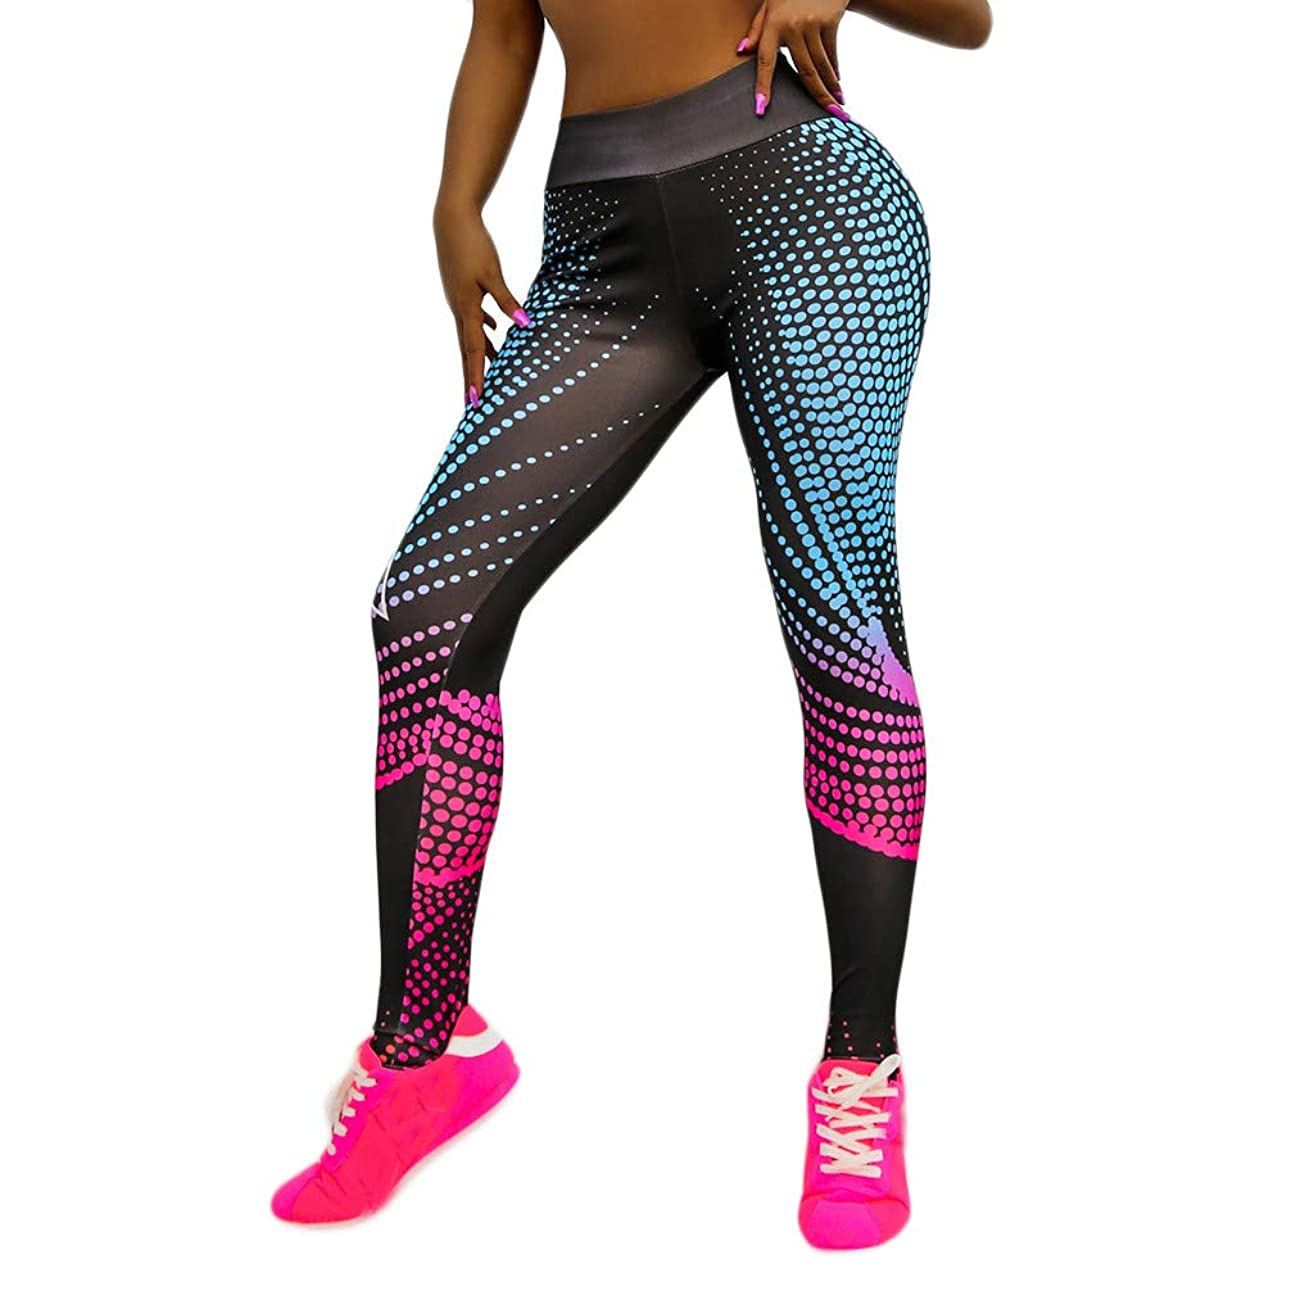 Yoga Pants,Pinleg Women's Digital Printed High-waist Tummy Control Compression Sports Fitness Running Yoga Nine-minute Pants Cropped Trousers (Multicolor, L)